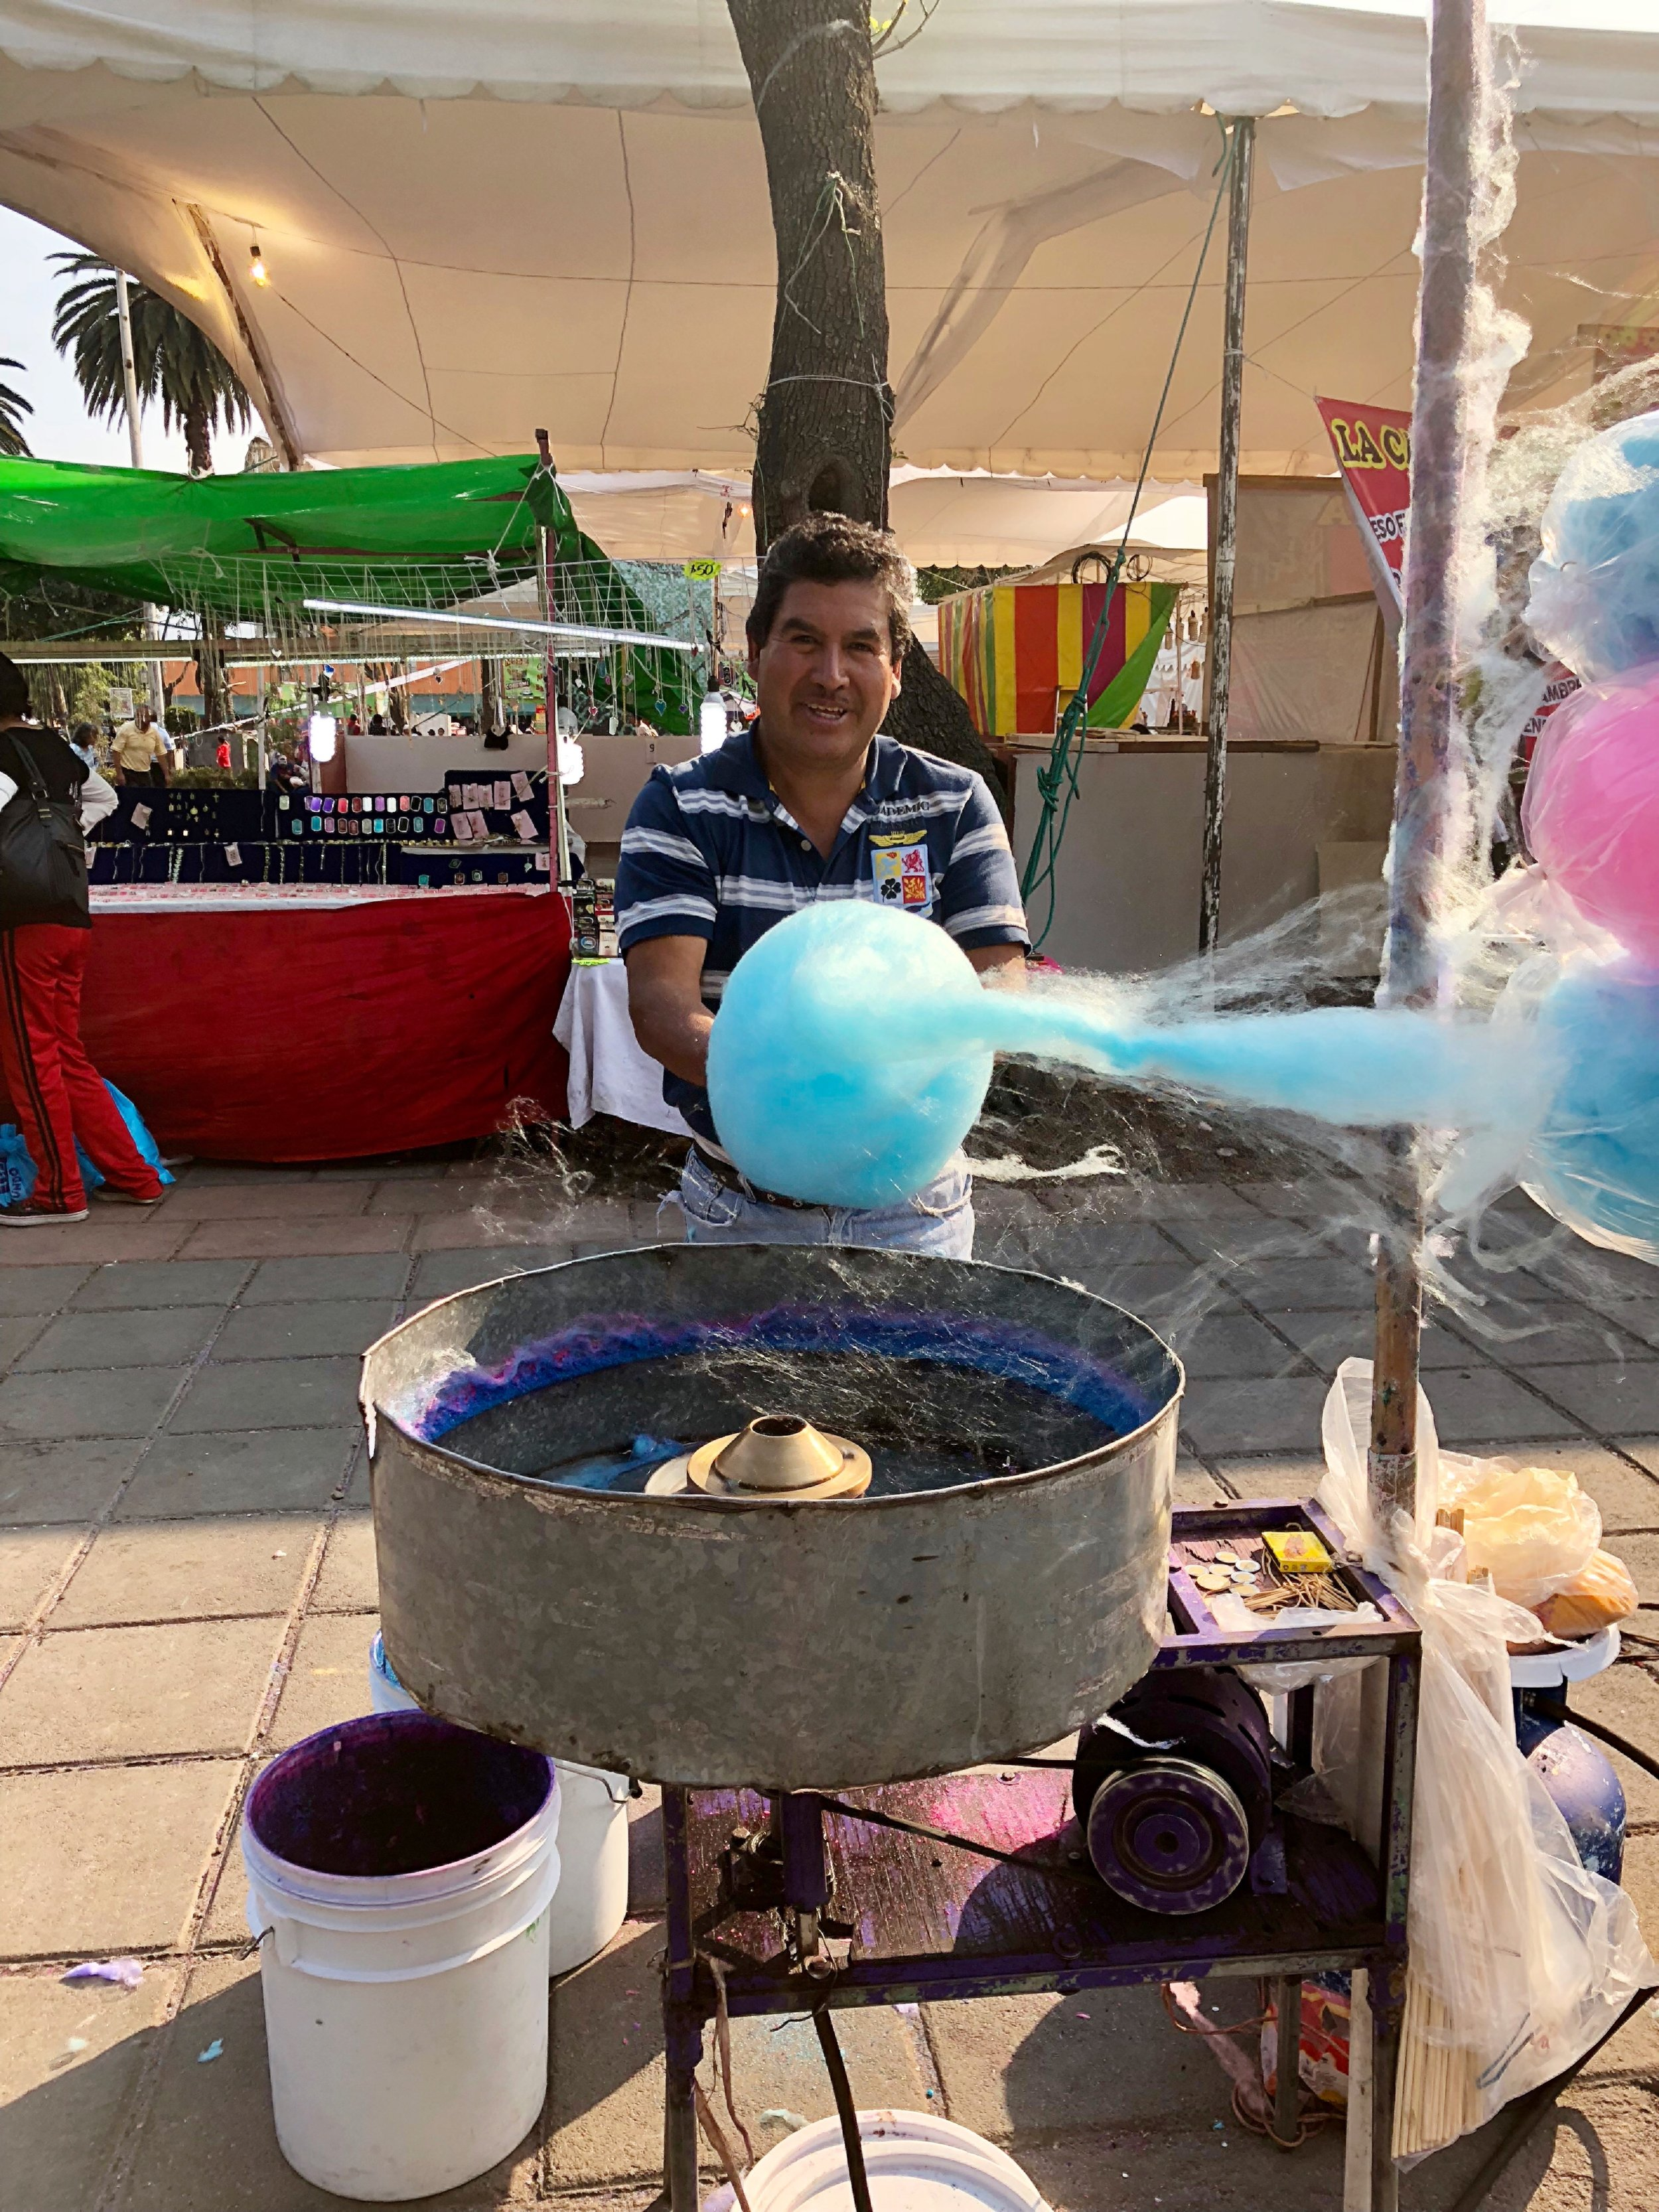 A local making my yummy cotton candy at Xochimilco's  Carnaval celebration